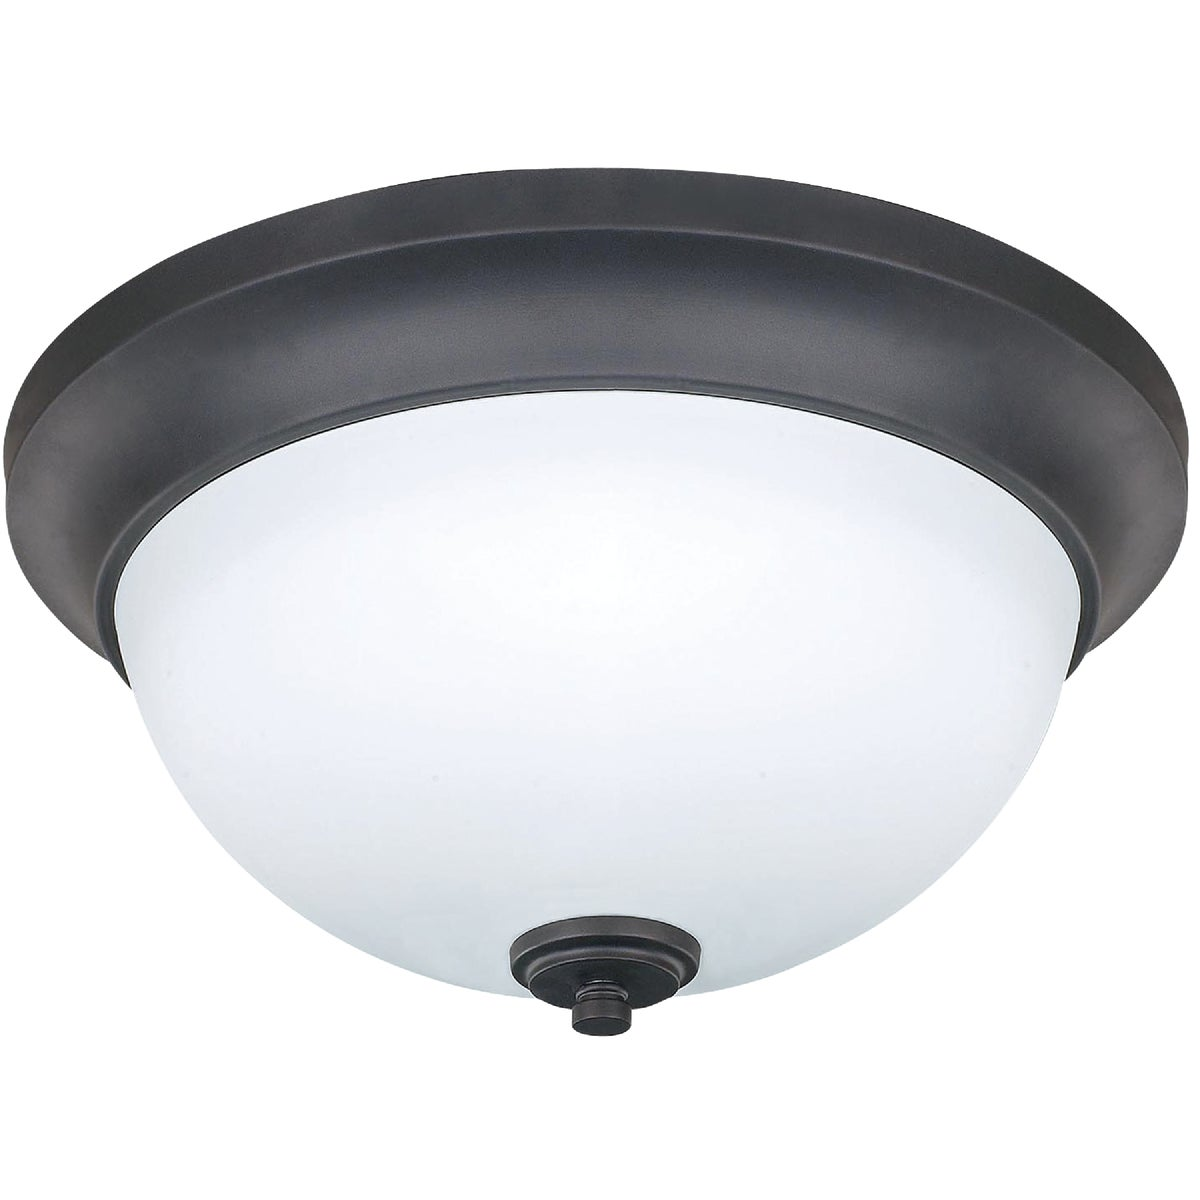 2BLB ORB CEILING FIXTURE - IFM256A13ORB by Canarm Gs